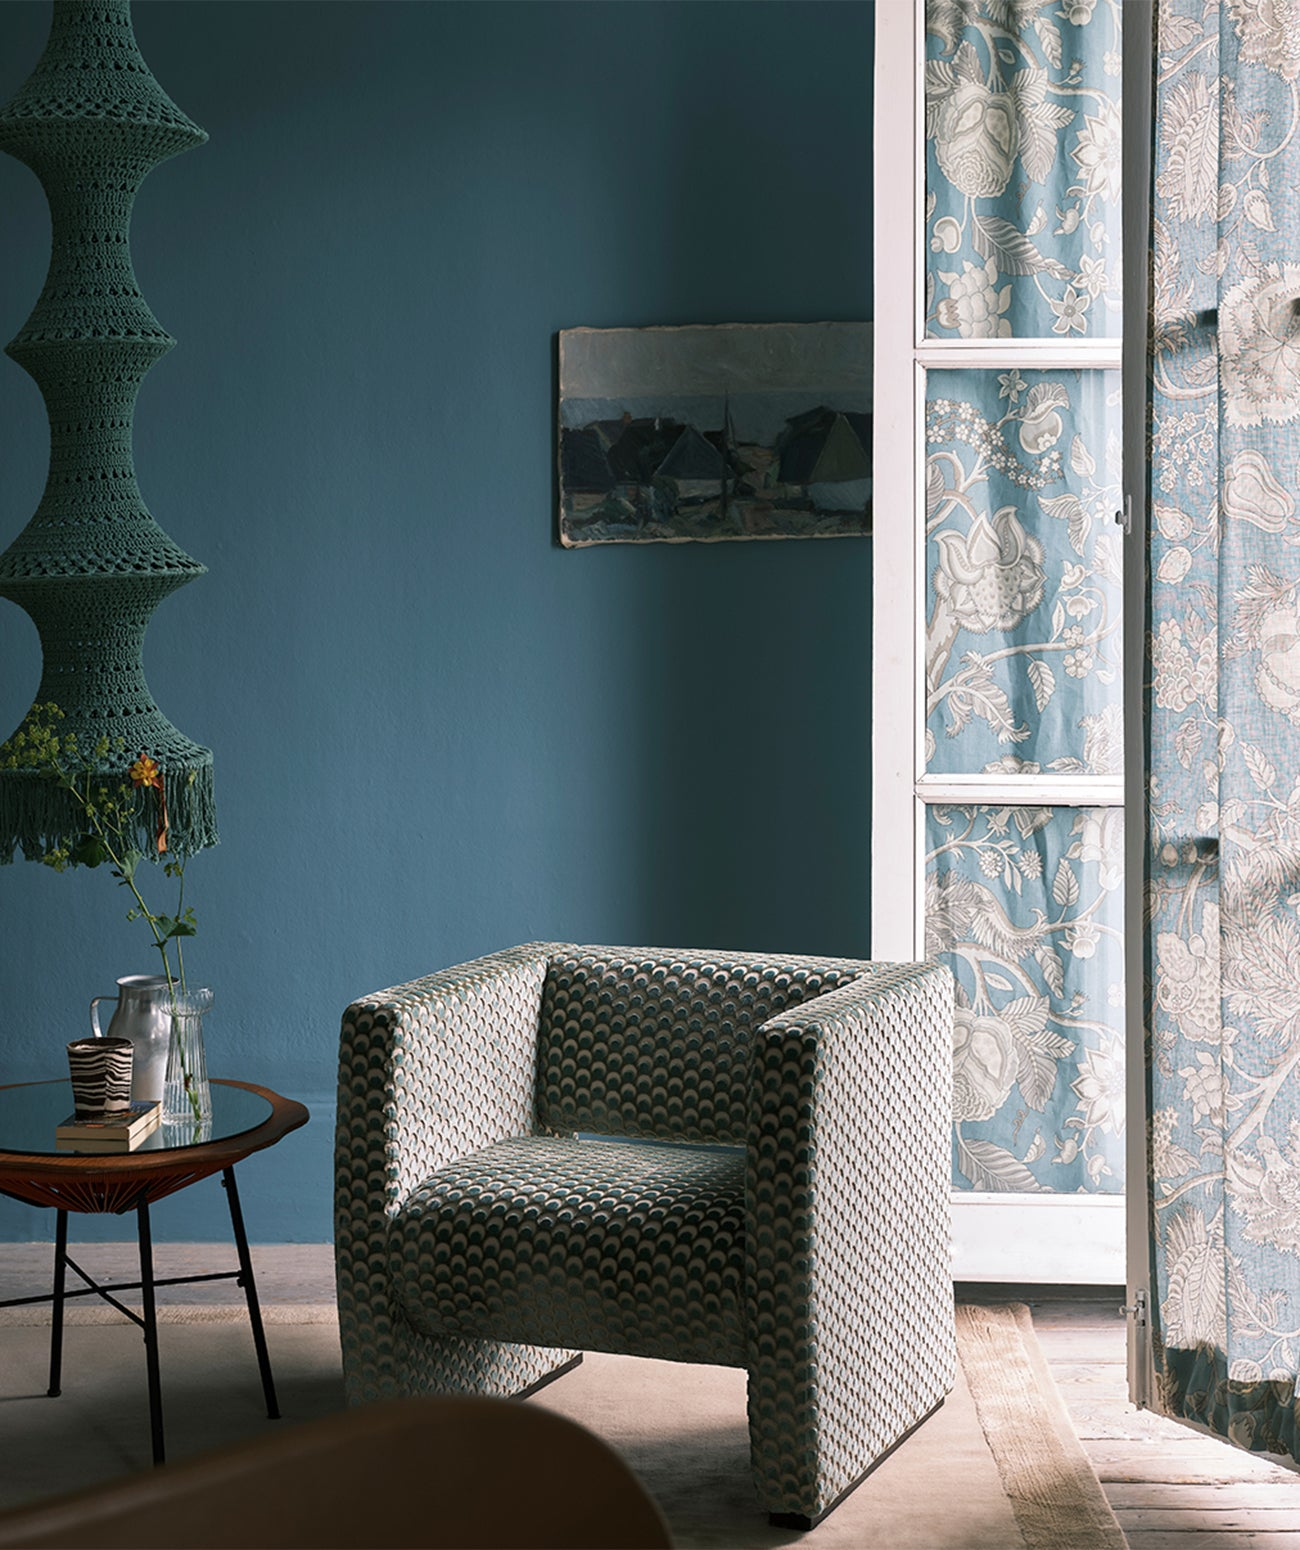 A deep blue room featuring upholstered chair and open French door/Photography: Farrow & Ball/Farrow & Ball's Berrington Blue wallcolor complements Liberty's Palampore Trail fabric, of the drapes, and Ottoman Spot, on the upholstered chair.